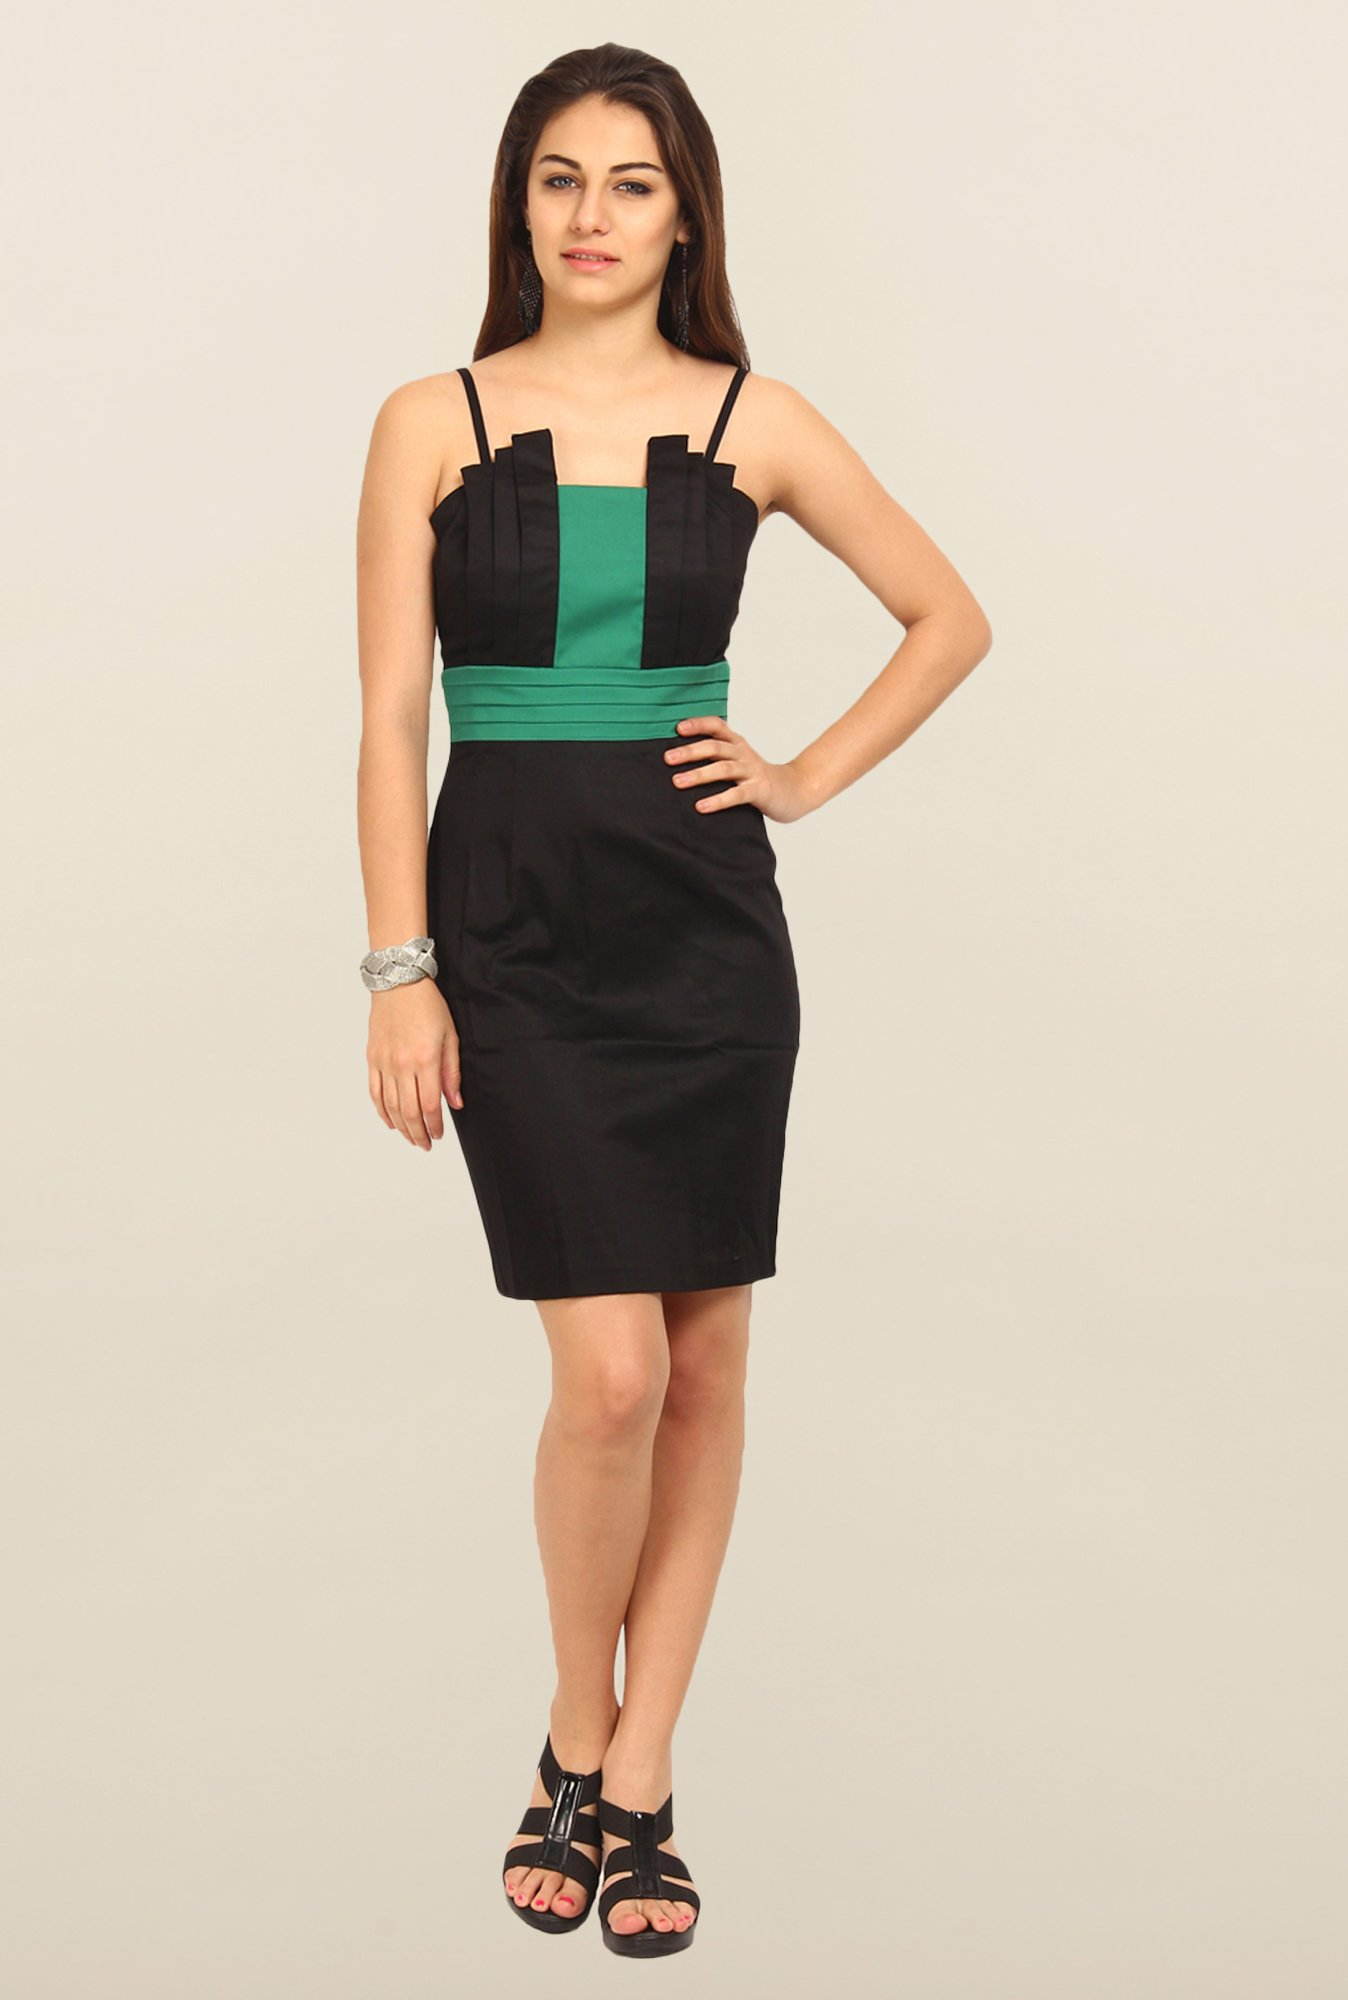 Avirate Black Solid Shoulder Straps A-Line Dress